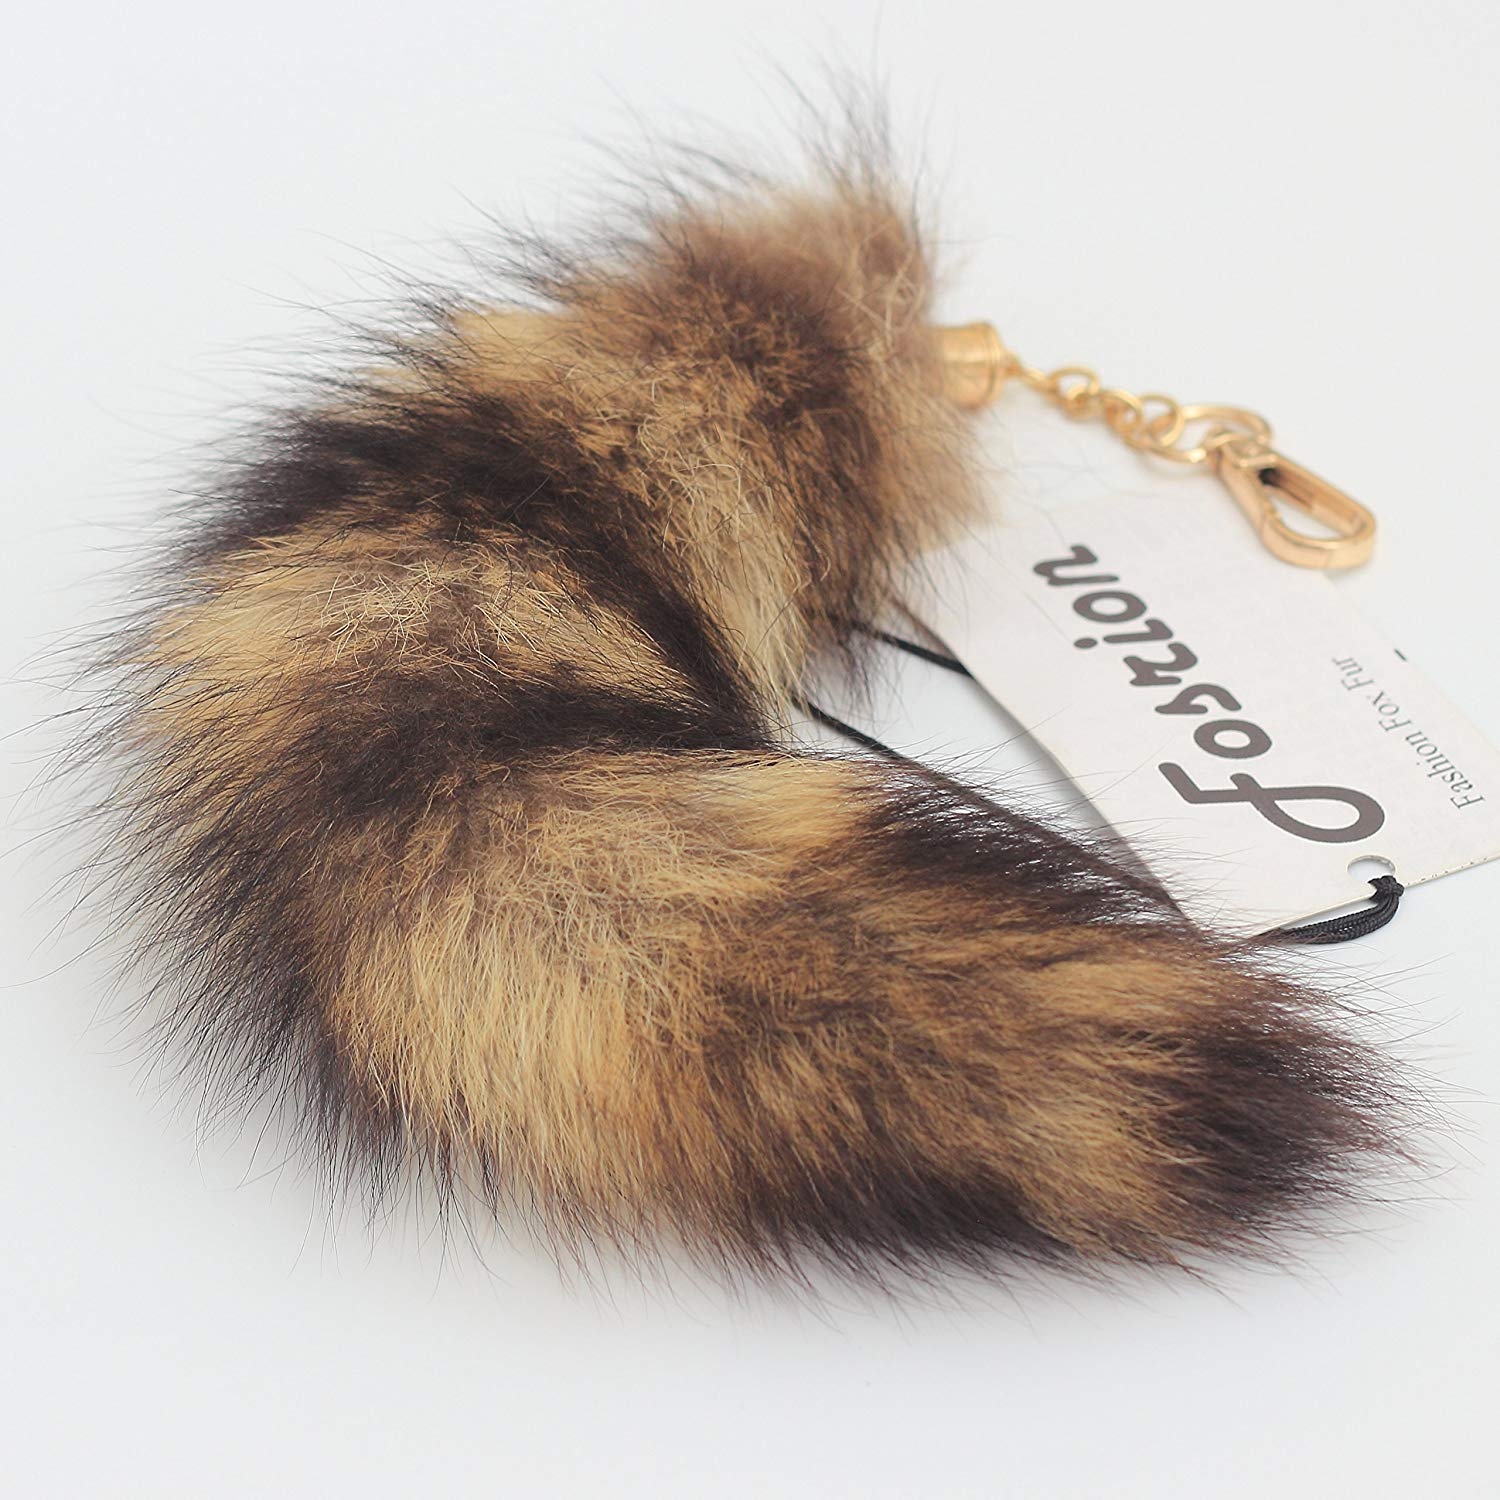 93441c58f Get Quotations · 10 inches Authentic America Raccoon Tail Fur Skin Cosplay  Toy Handbag Accessory Key Chain Ring Hook